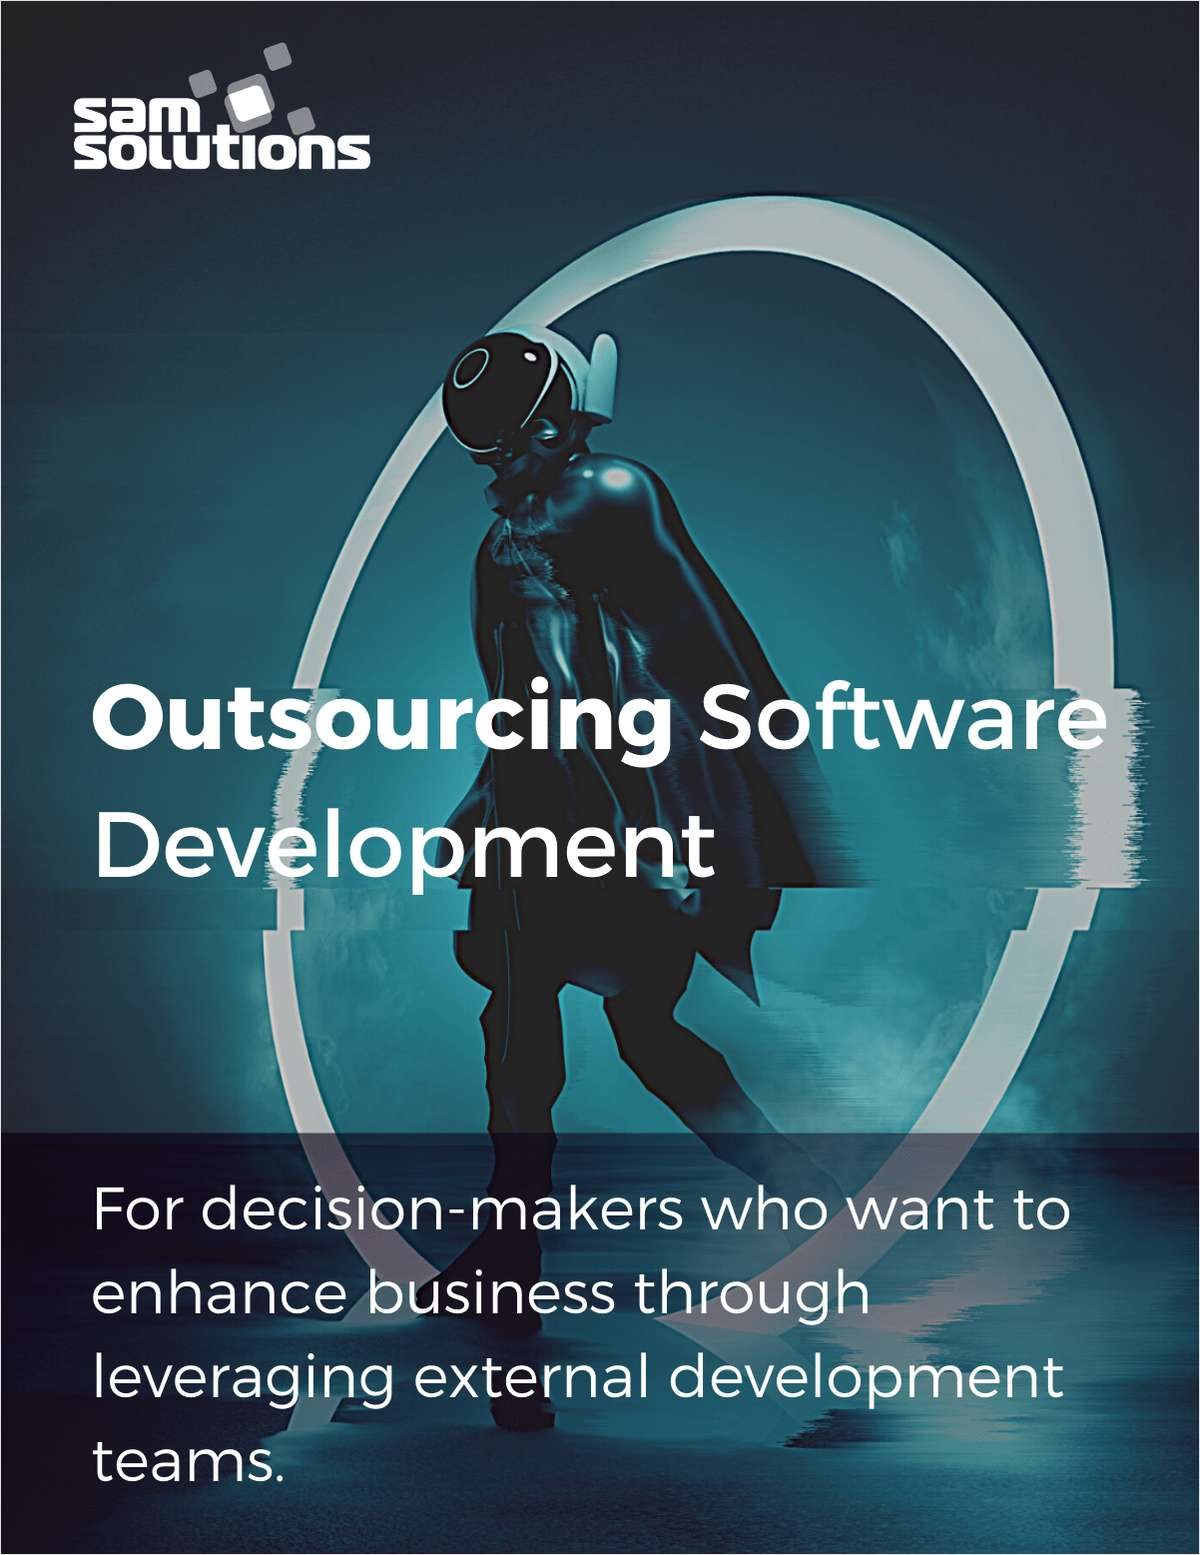 Executive's Guide to Outsourcing Software Development for Streamlined Operations, Minimized Time to Market, and Improved Business